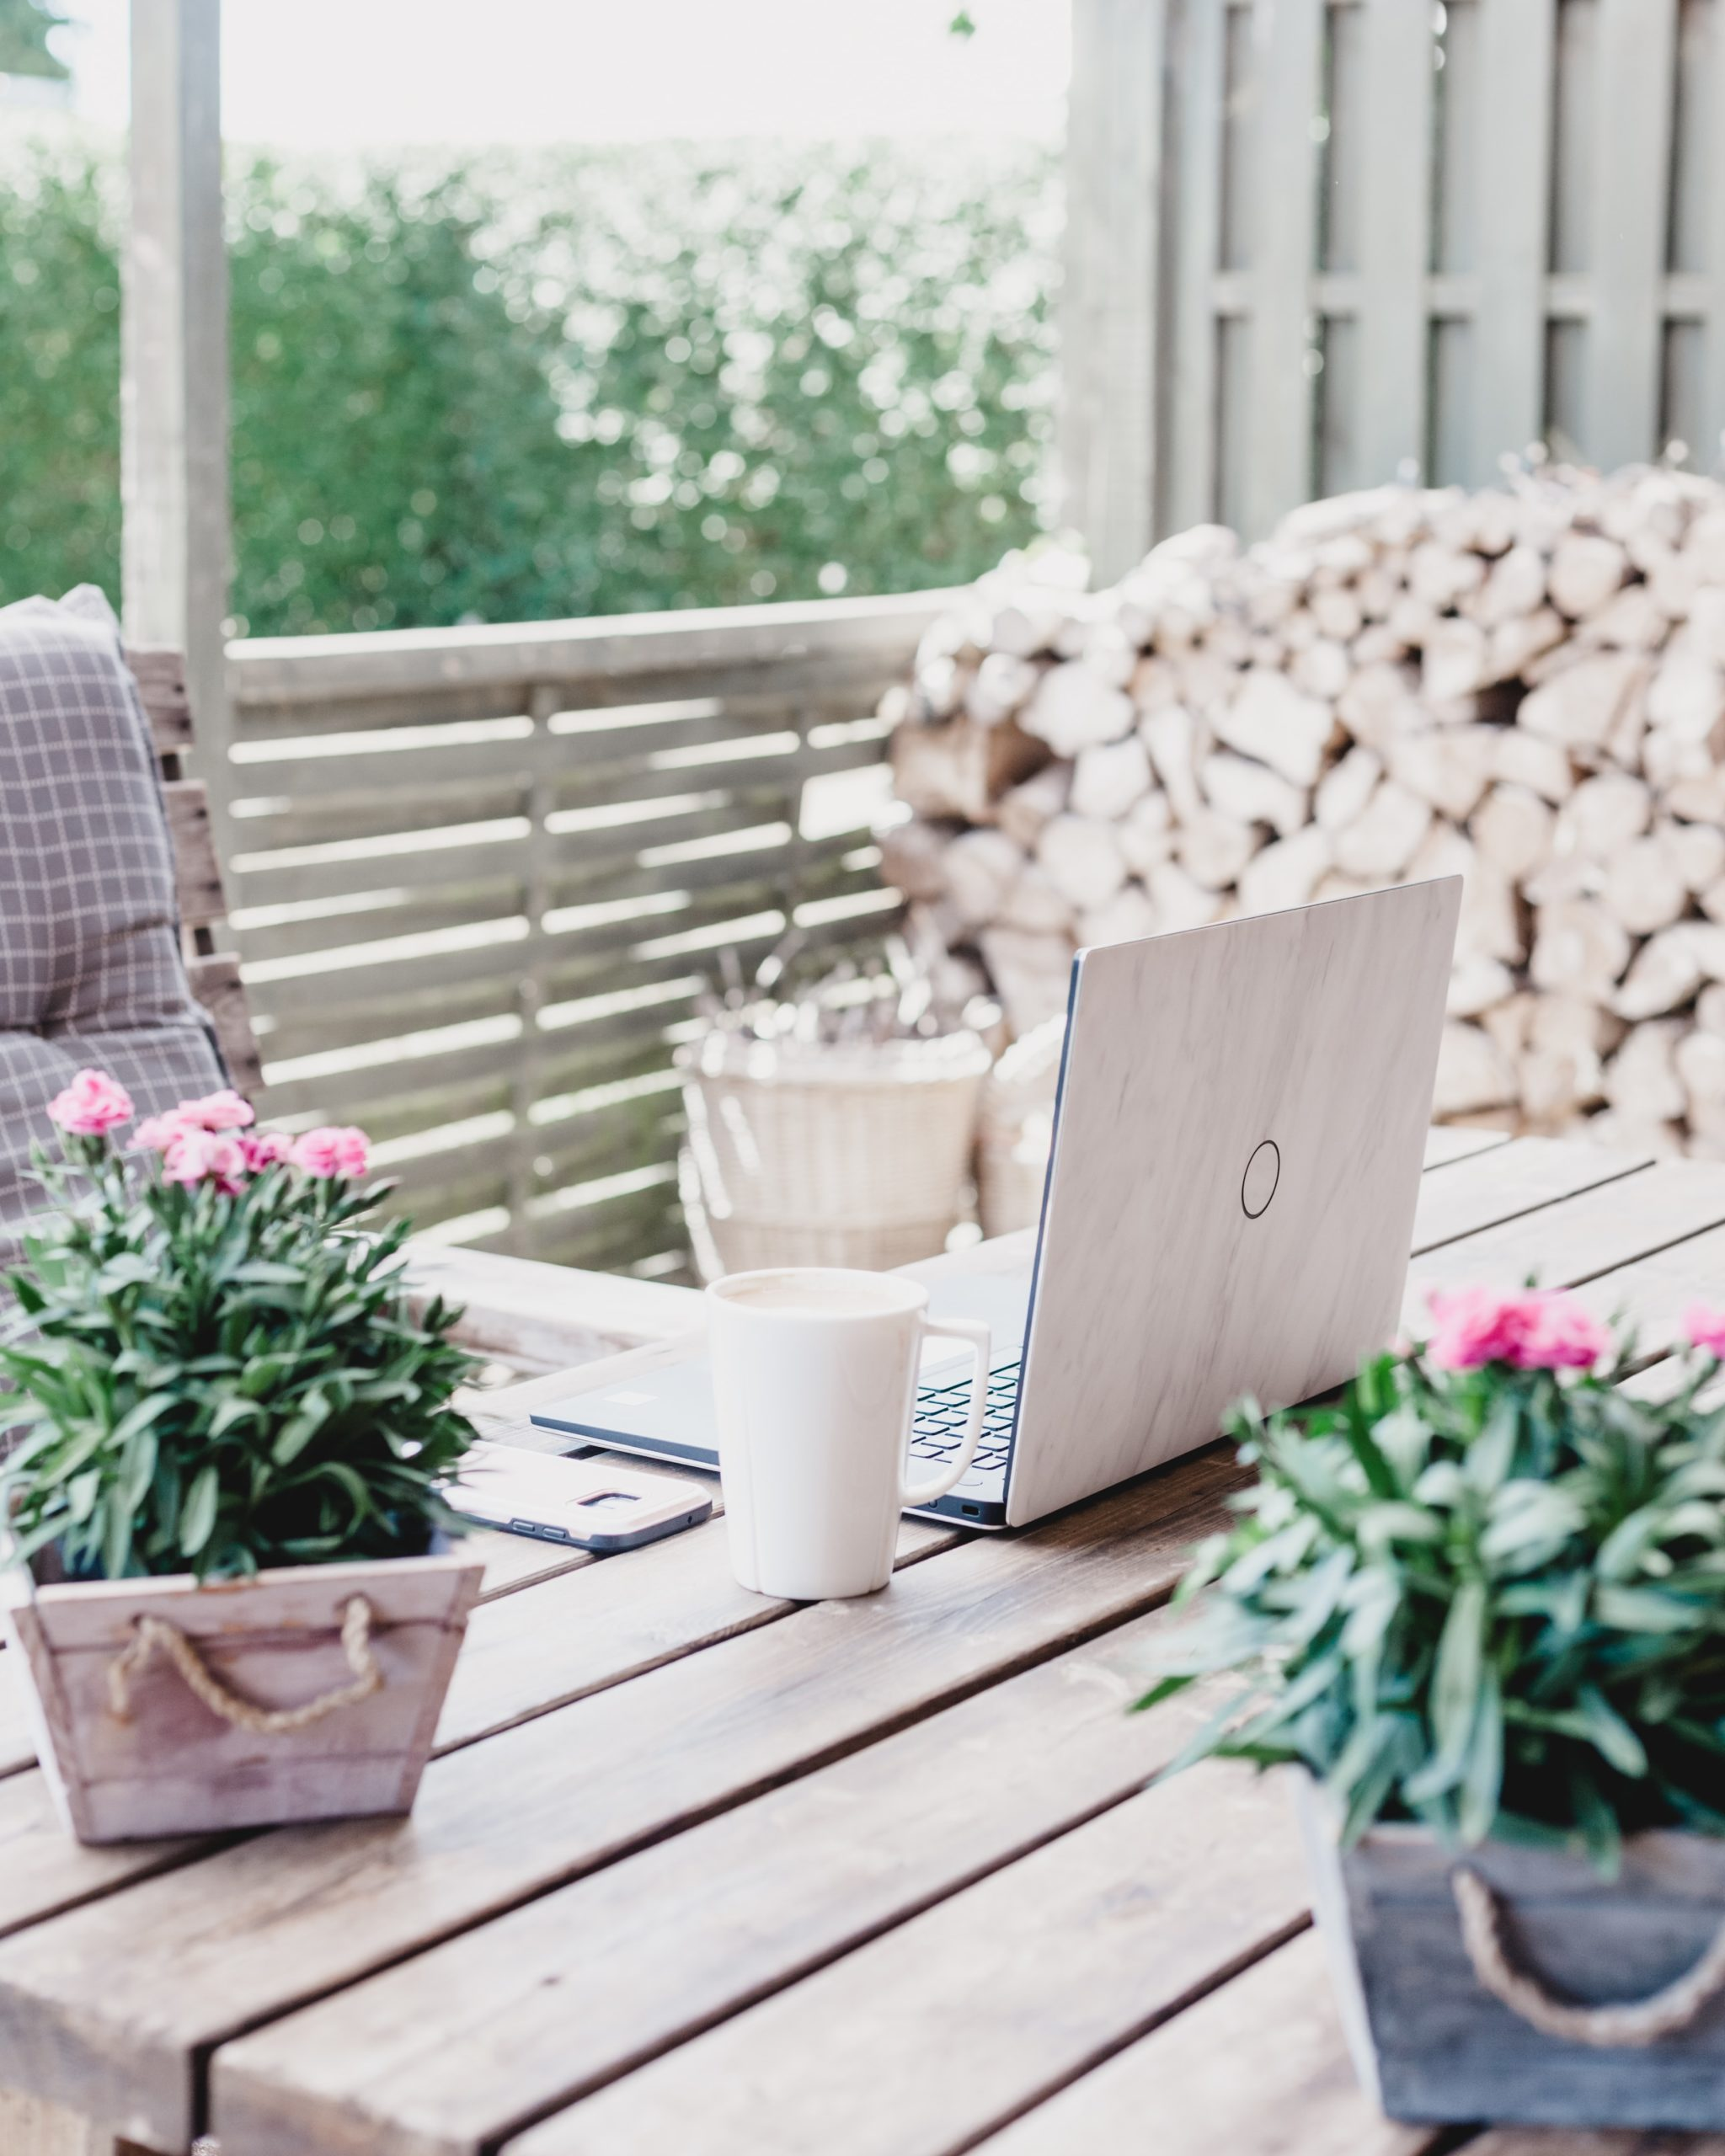 Enjoy a Vacation While Working Remote